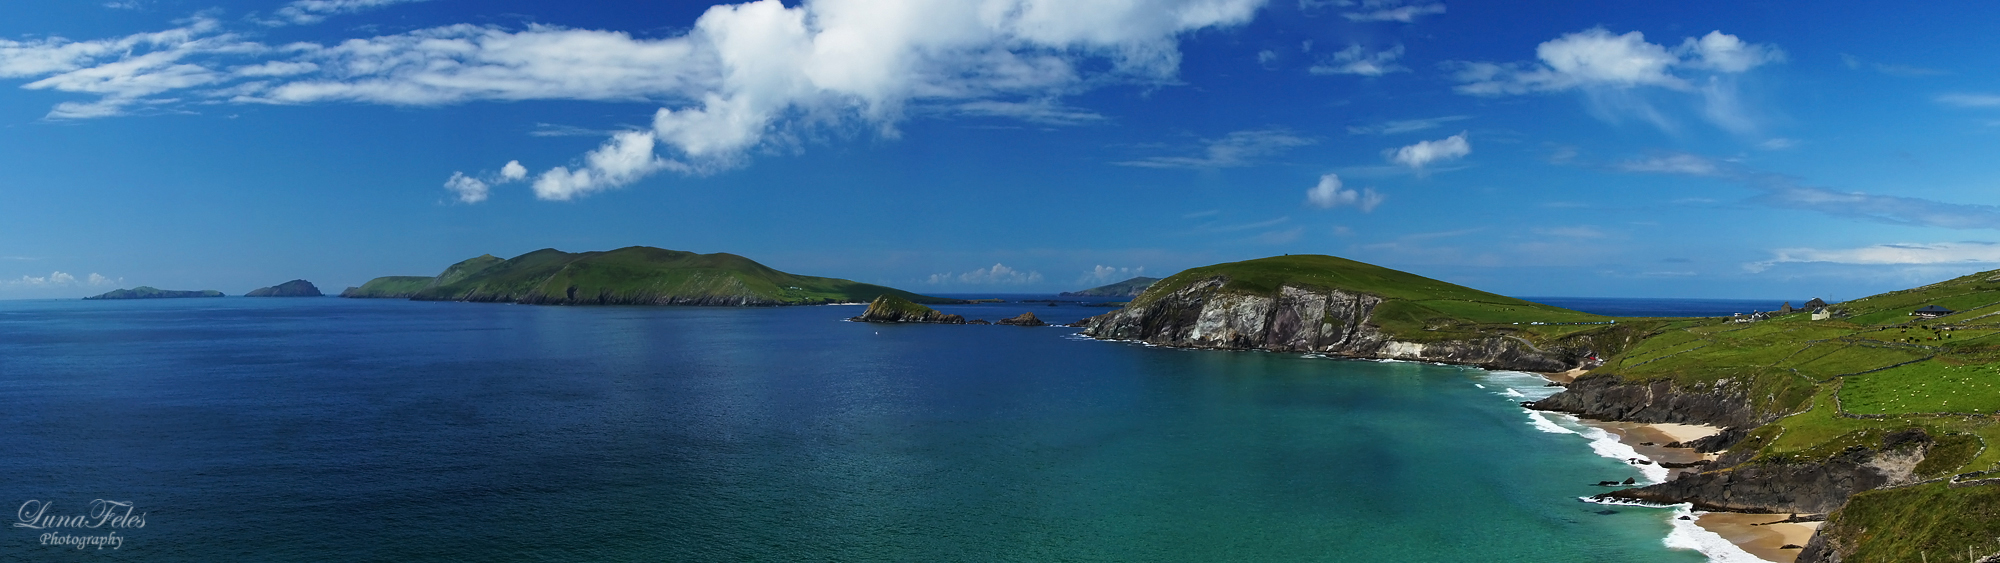 Dingle peninsula by LunaFeles